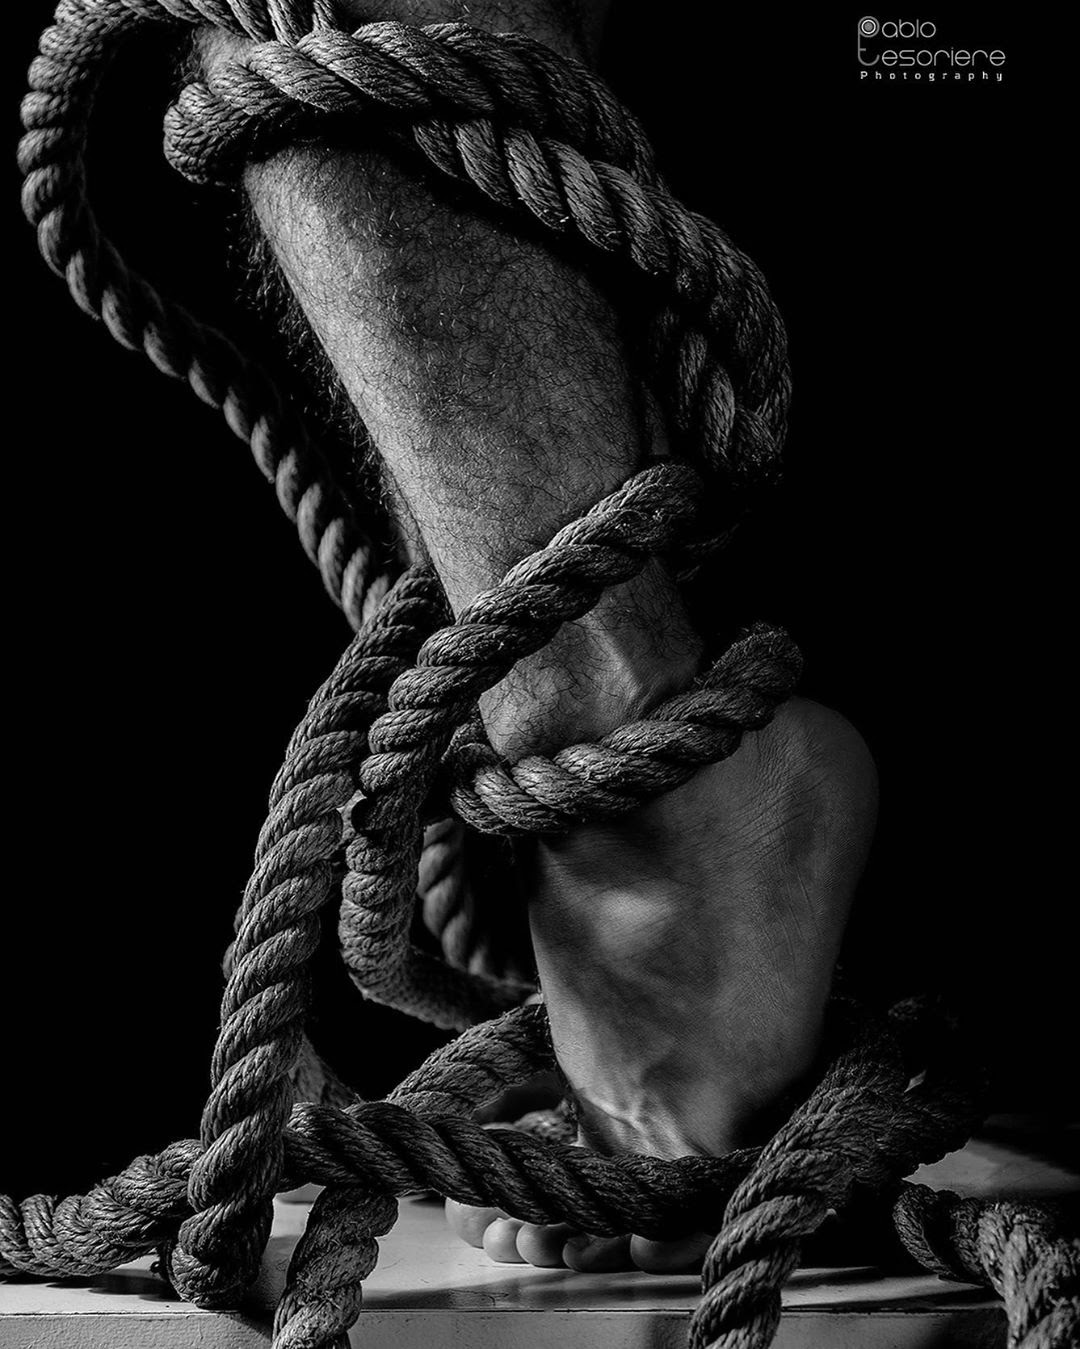 RopE and FooT, by Pablo Tesoriere